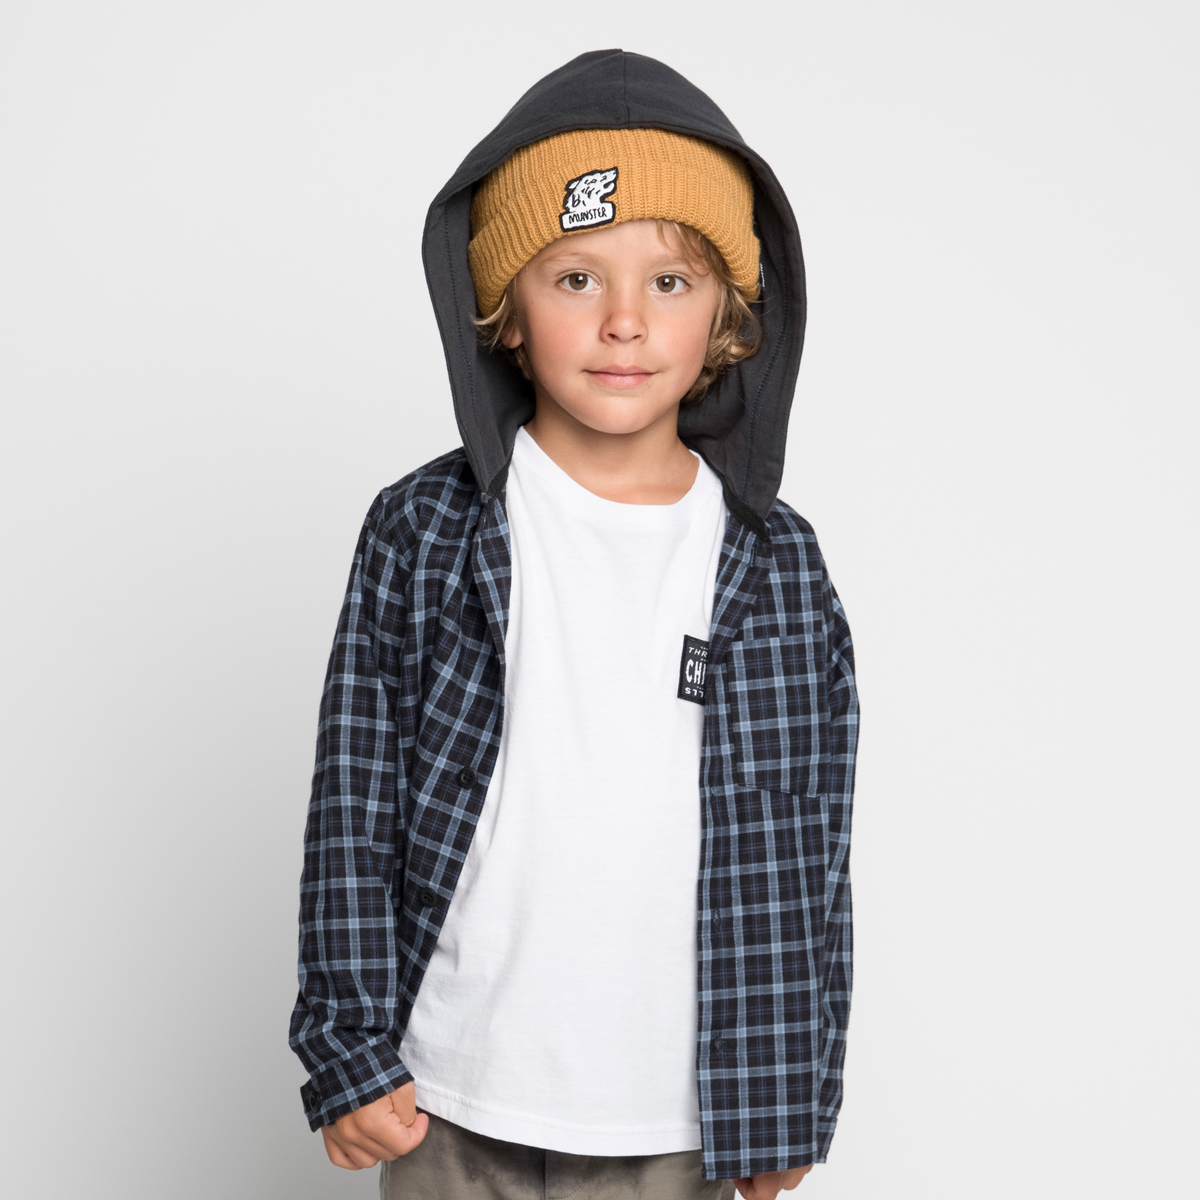 Munster Kids Huffle Flannel Shirt in Blue Check on boy